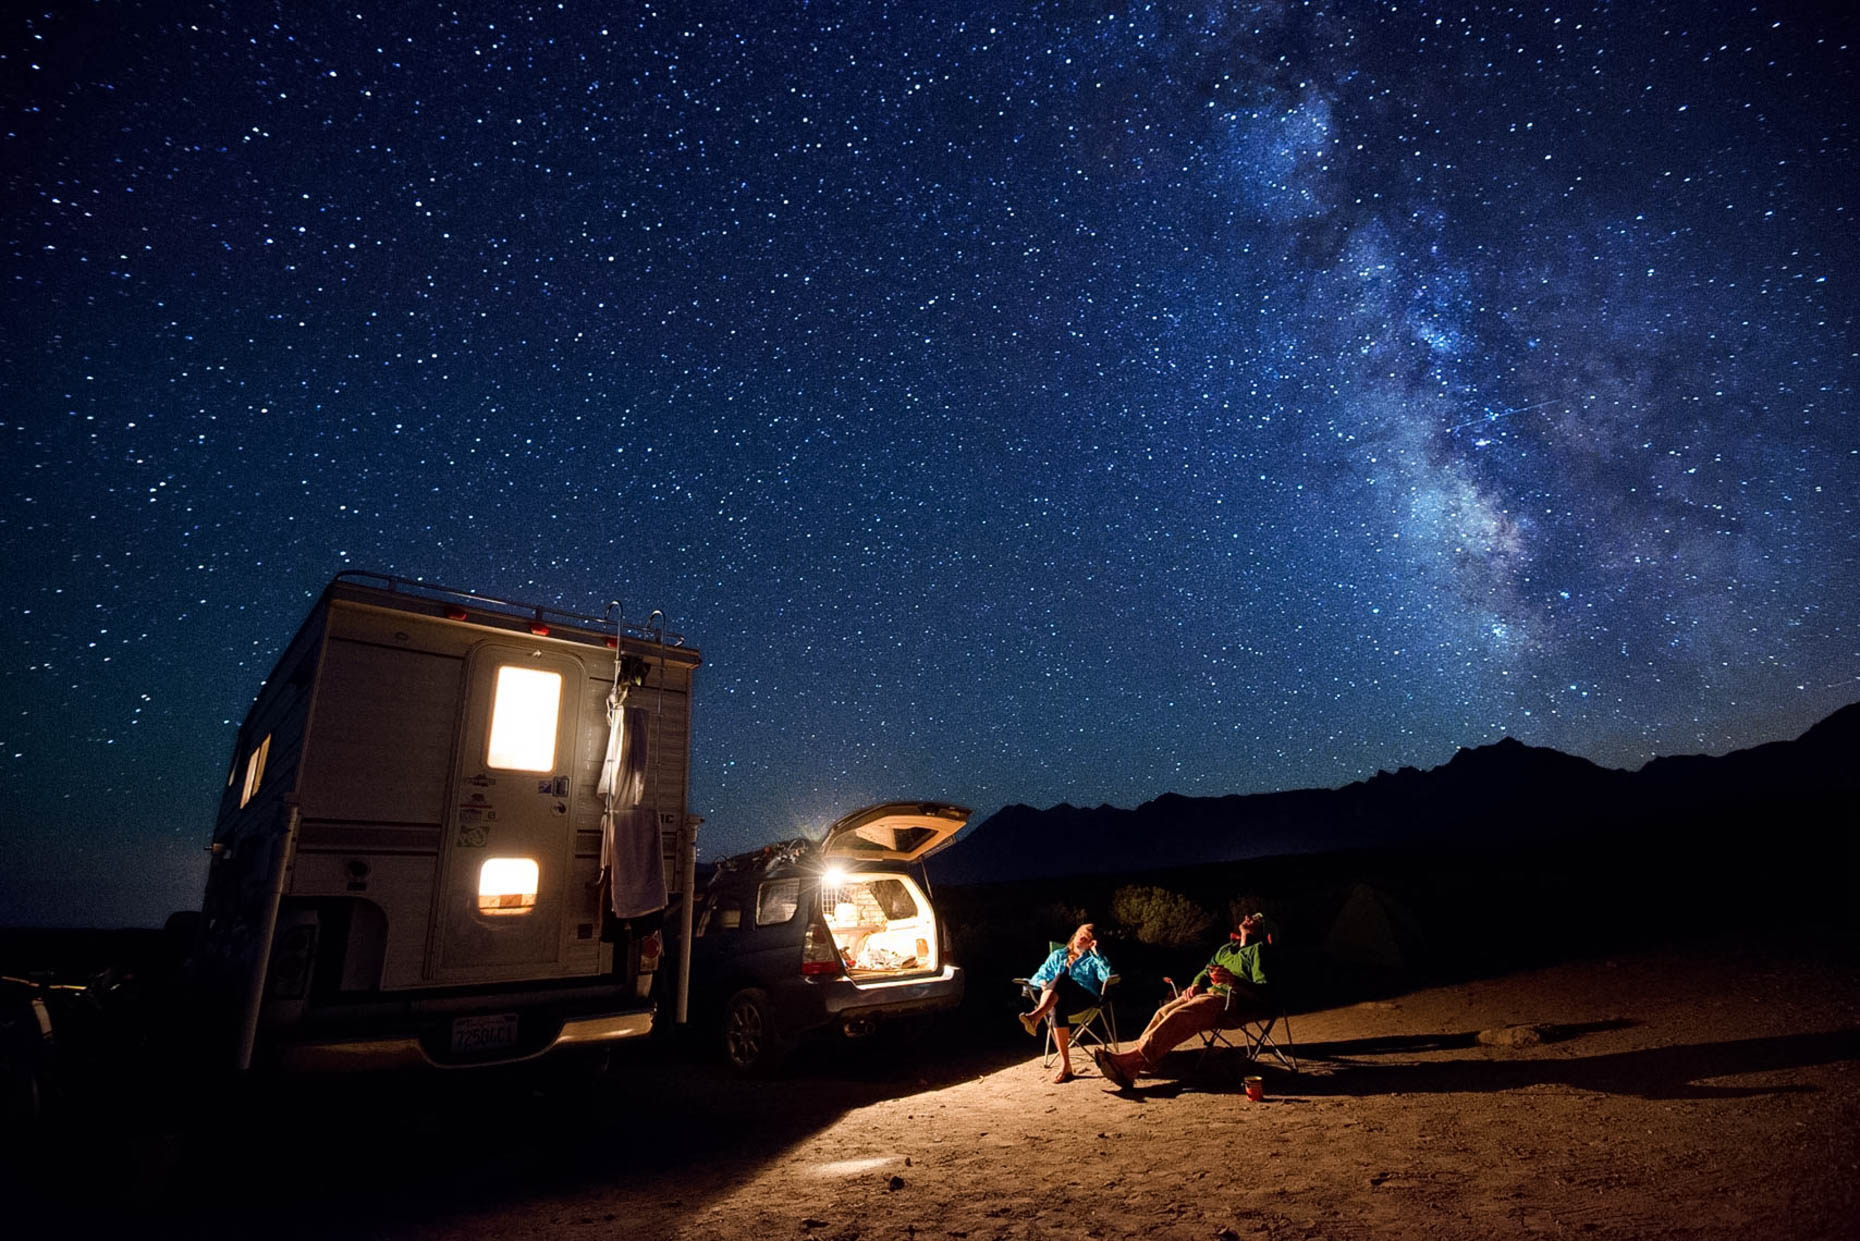 Camping Under The Stars - Eastern Sierra, California